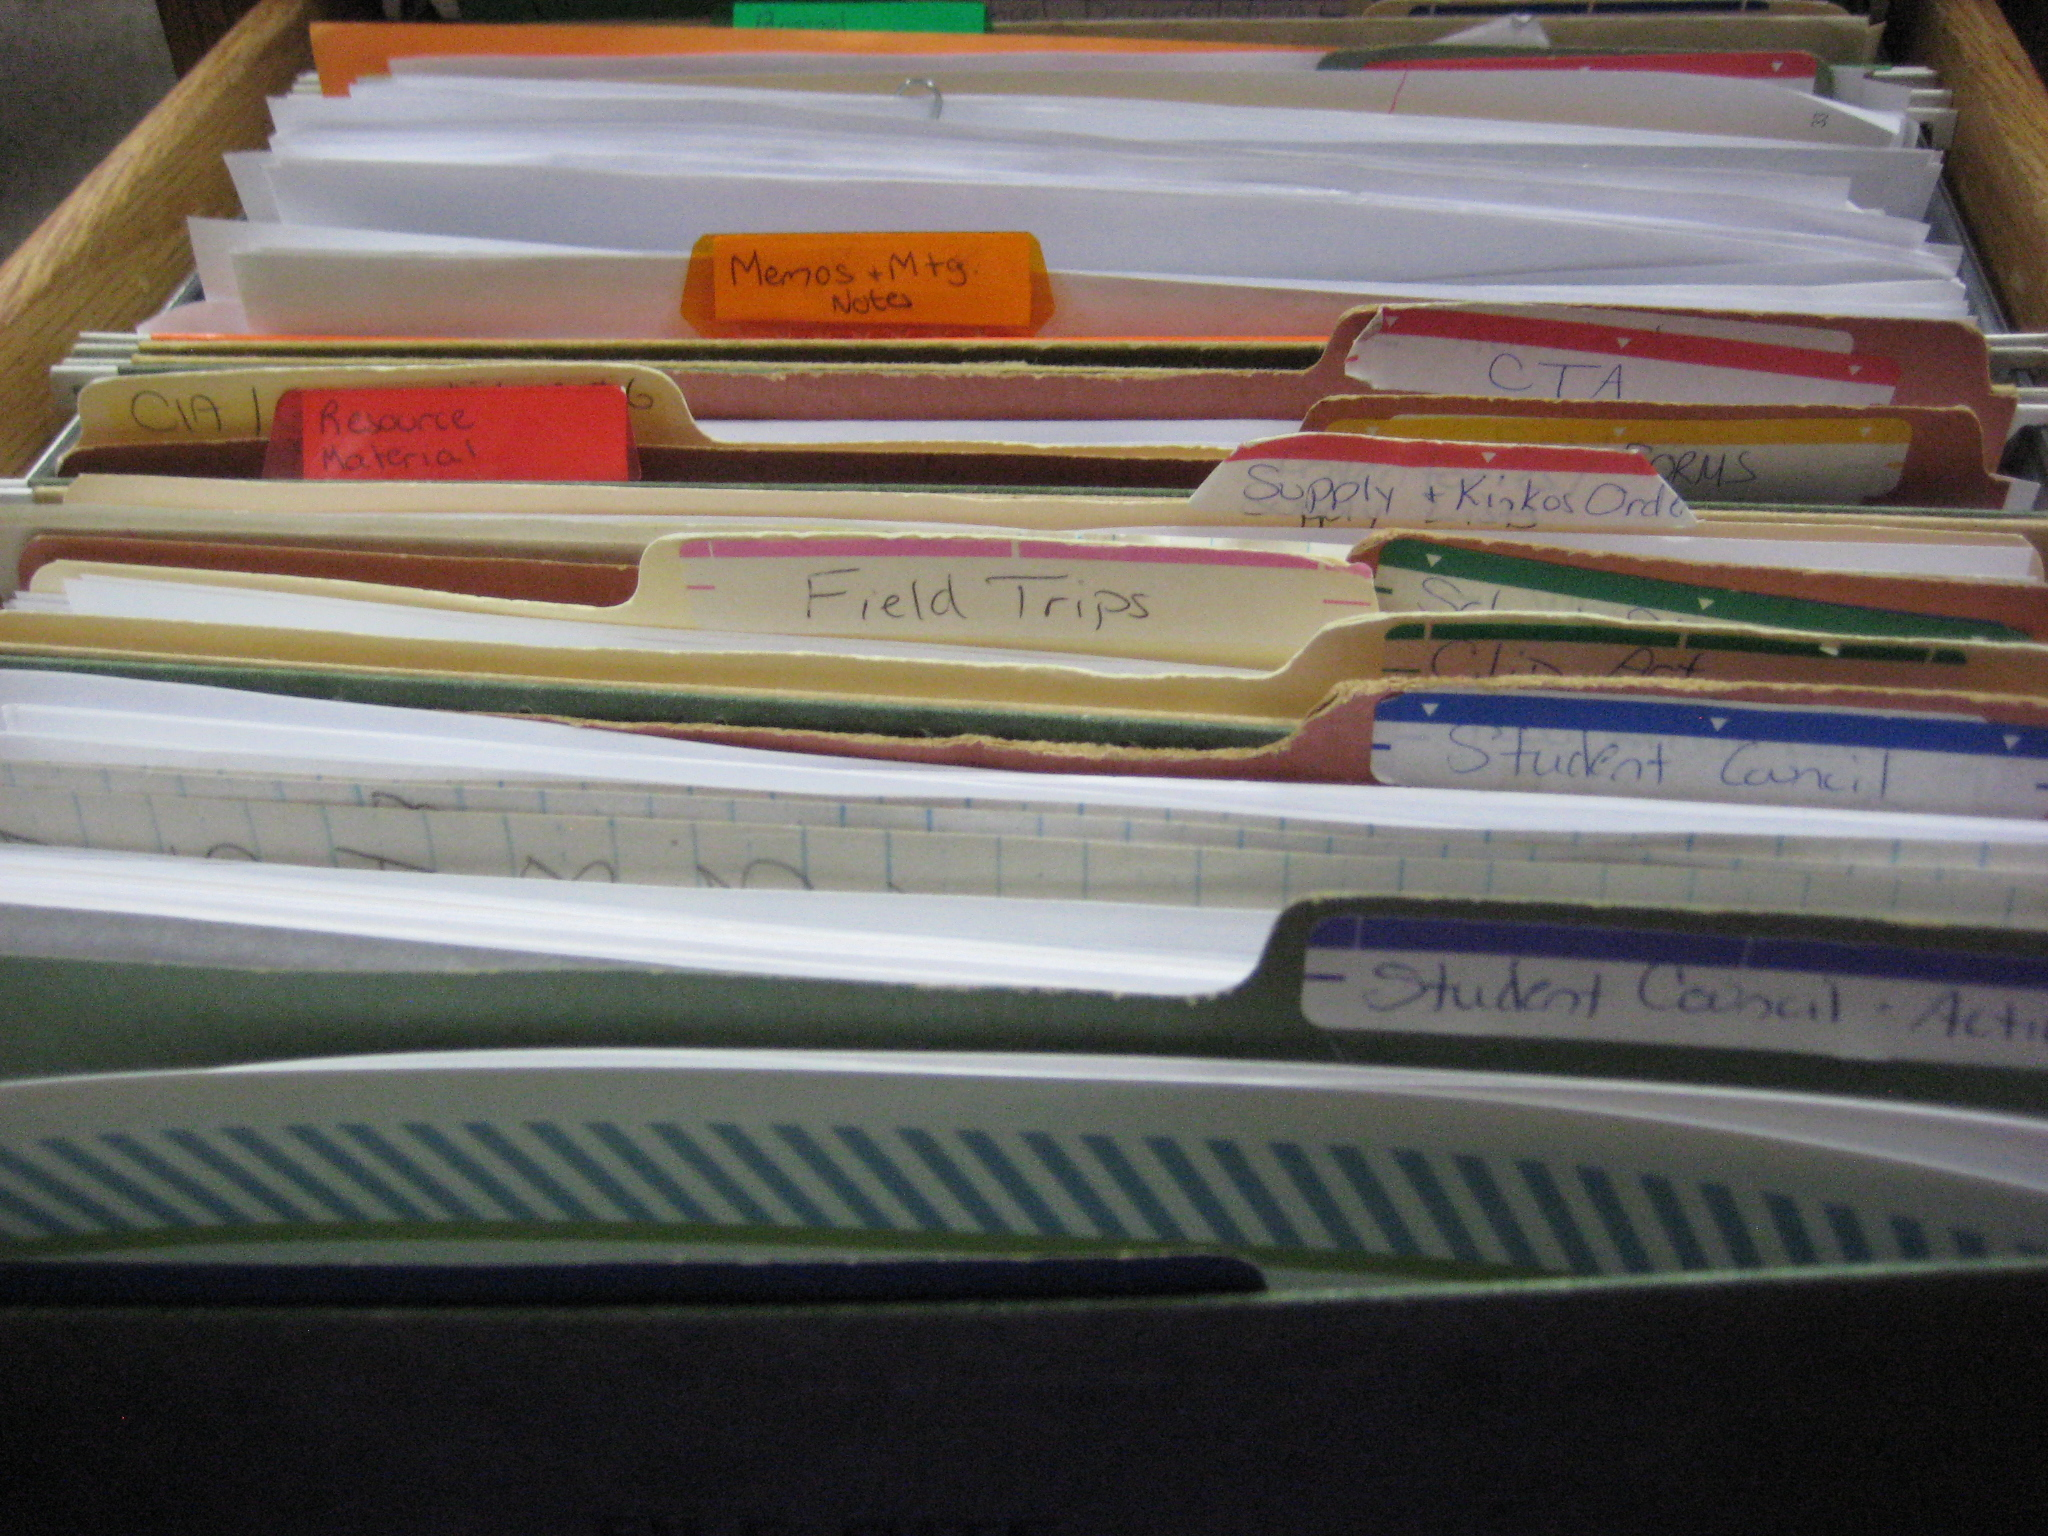 Term Papers on Management - Researchomatic